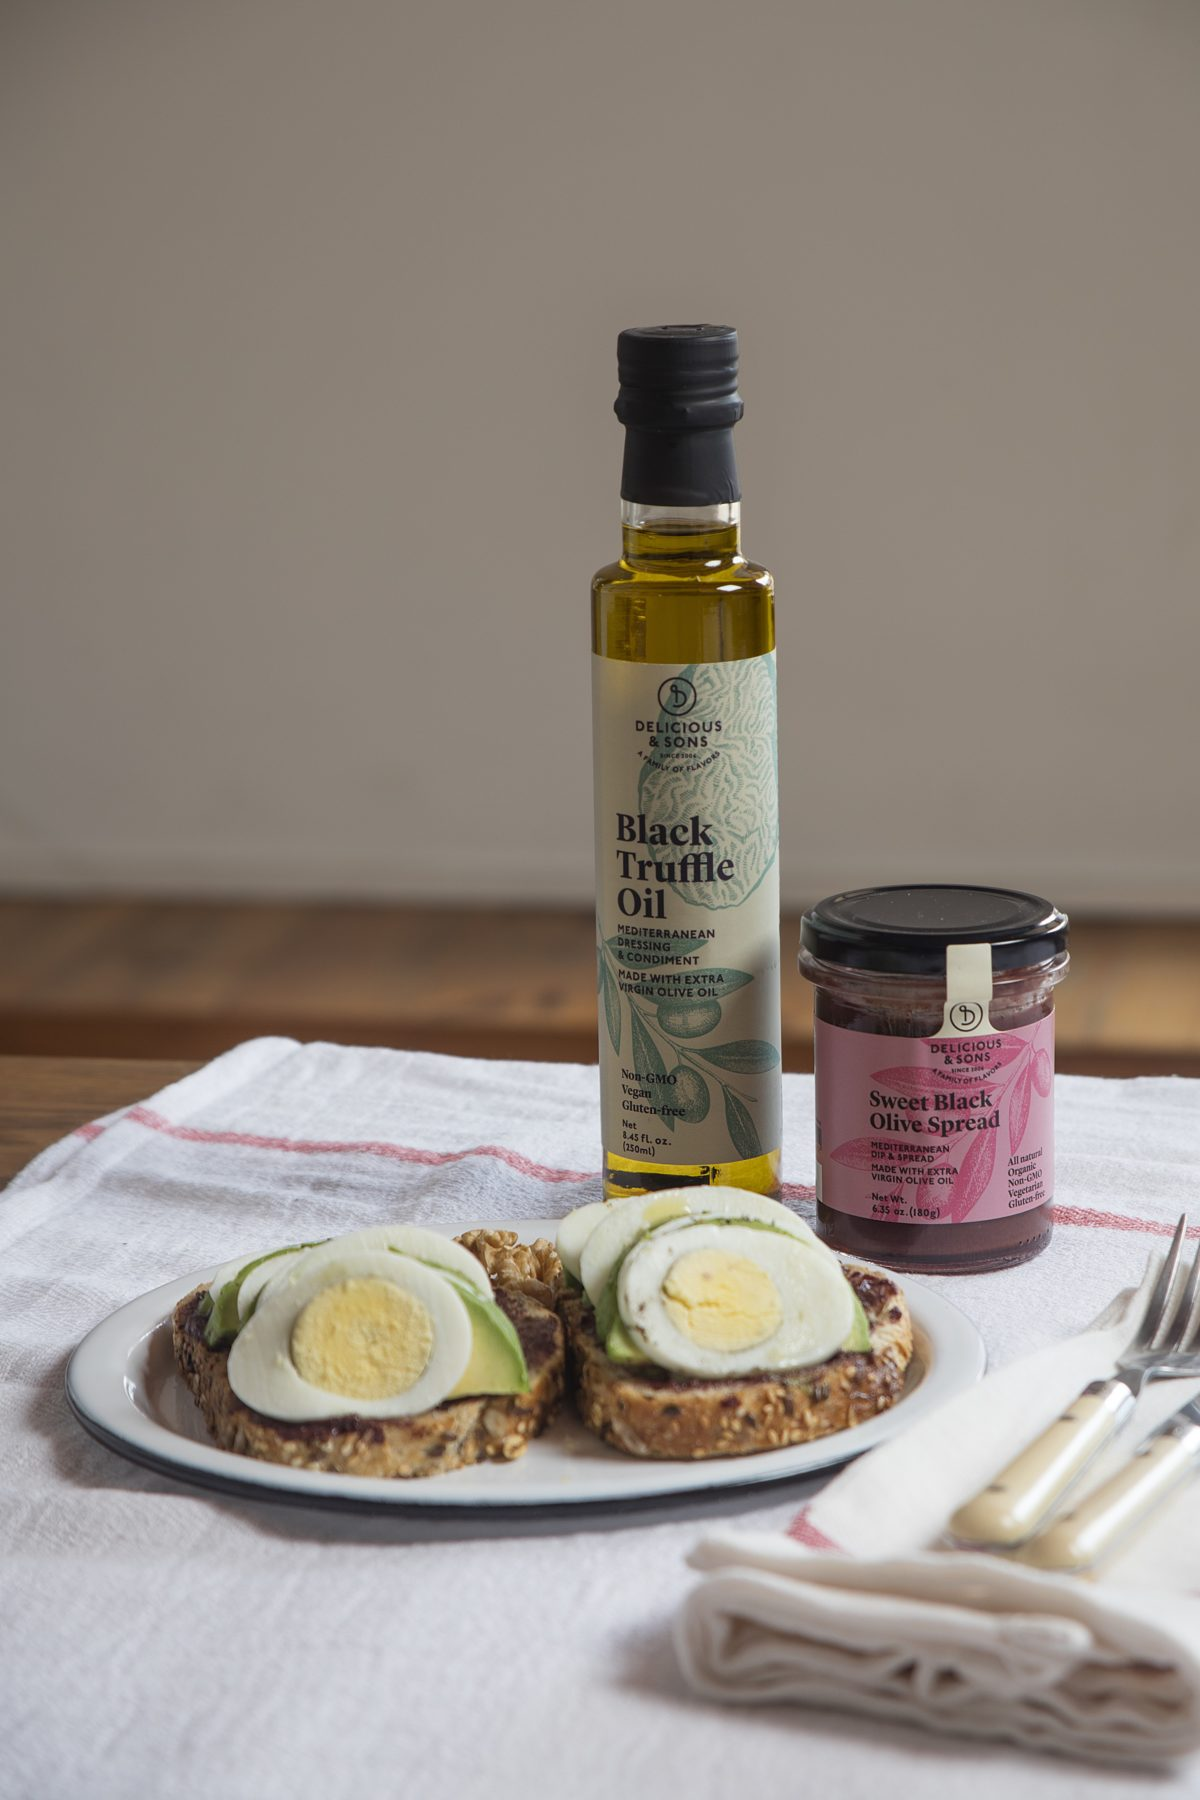 Avocado Toast with Hard Boiled Egg, Sweet Black Olive Spread, and Black Truffle Oil by Dorotea — Delicious & Sons